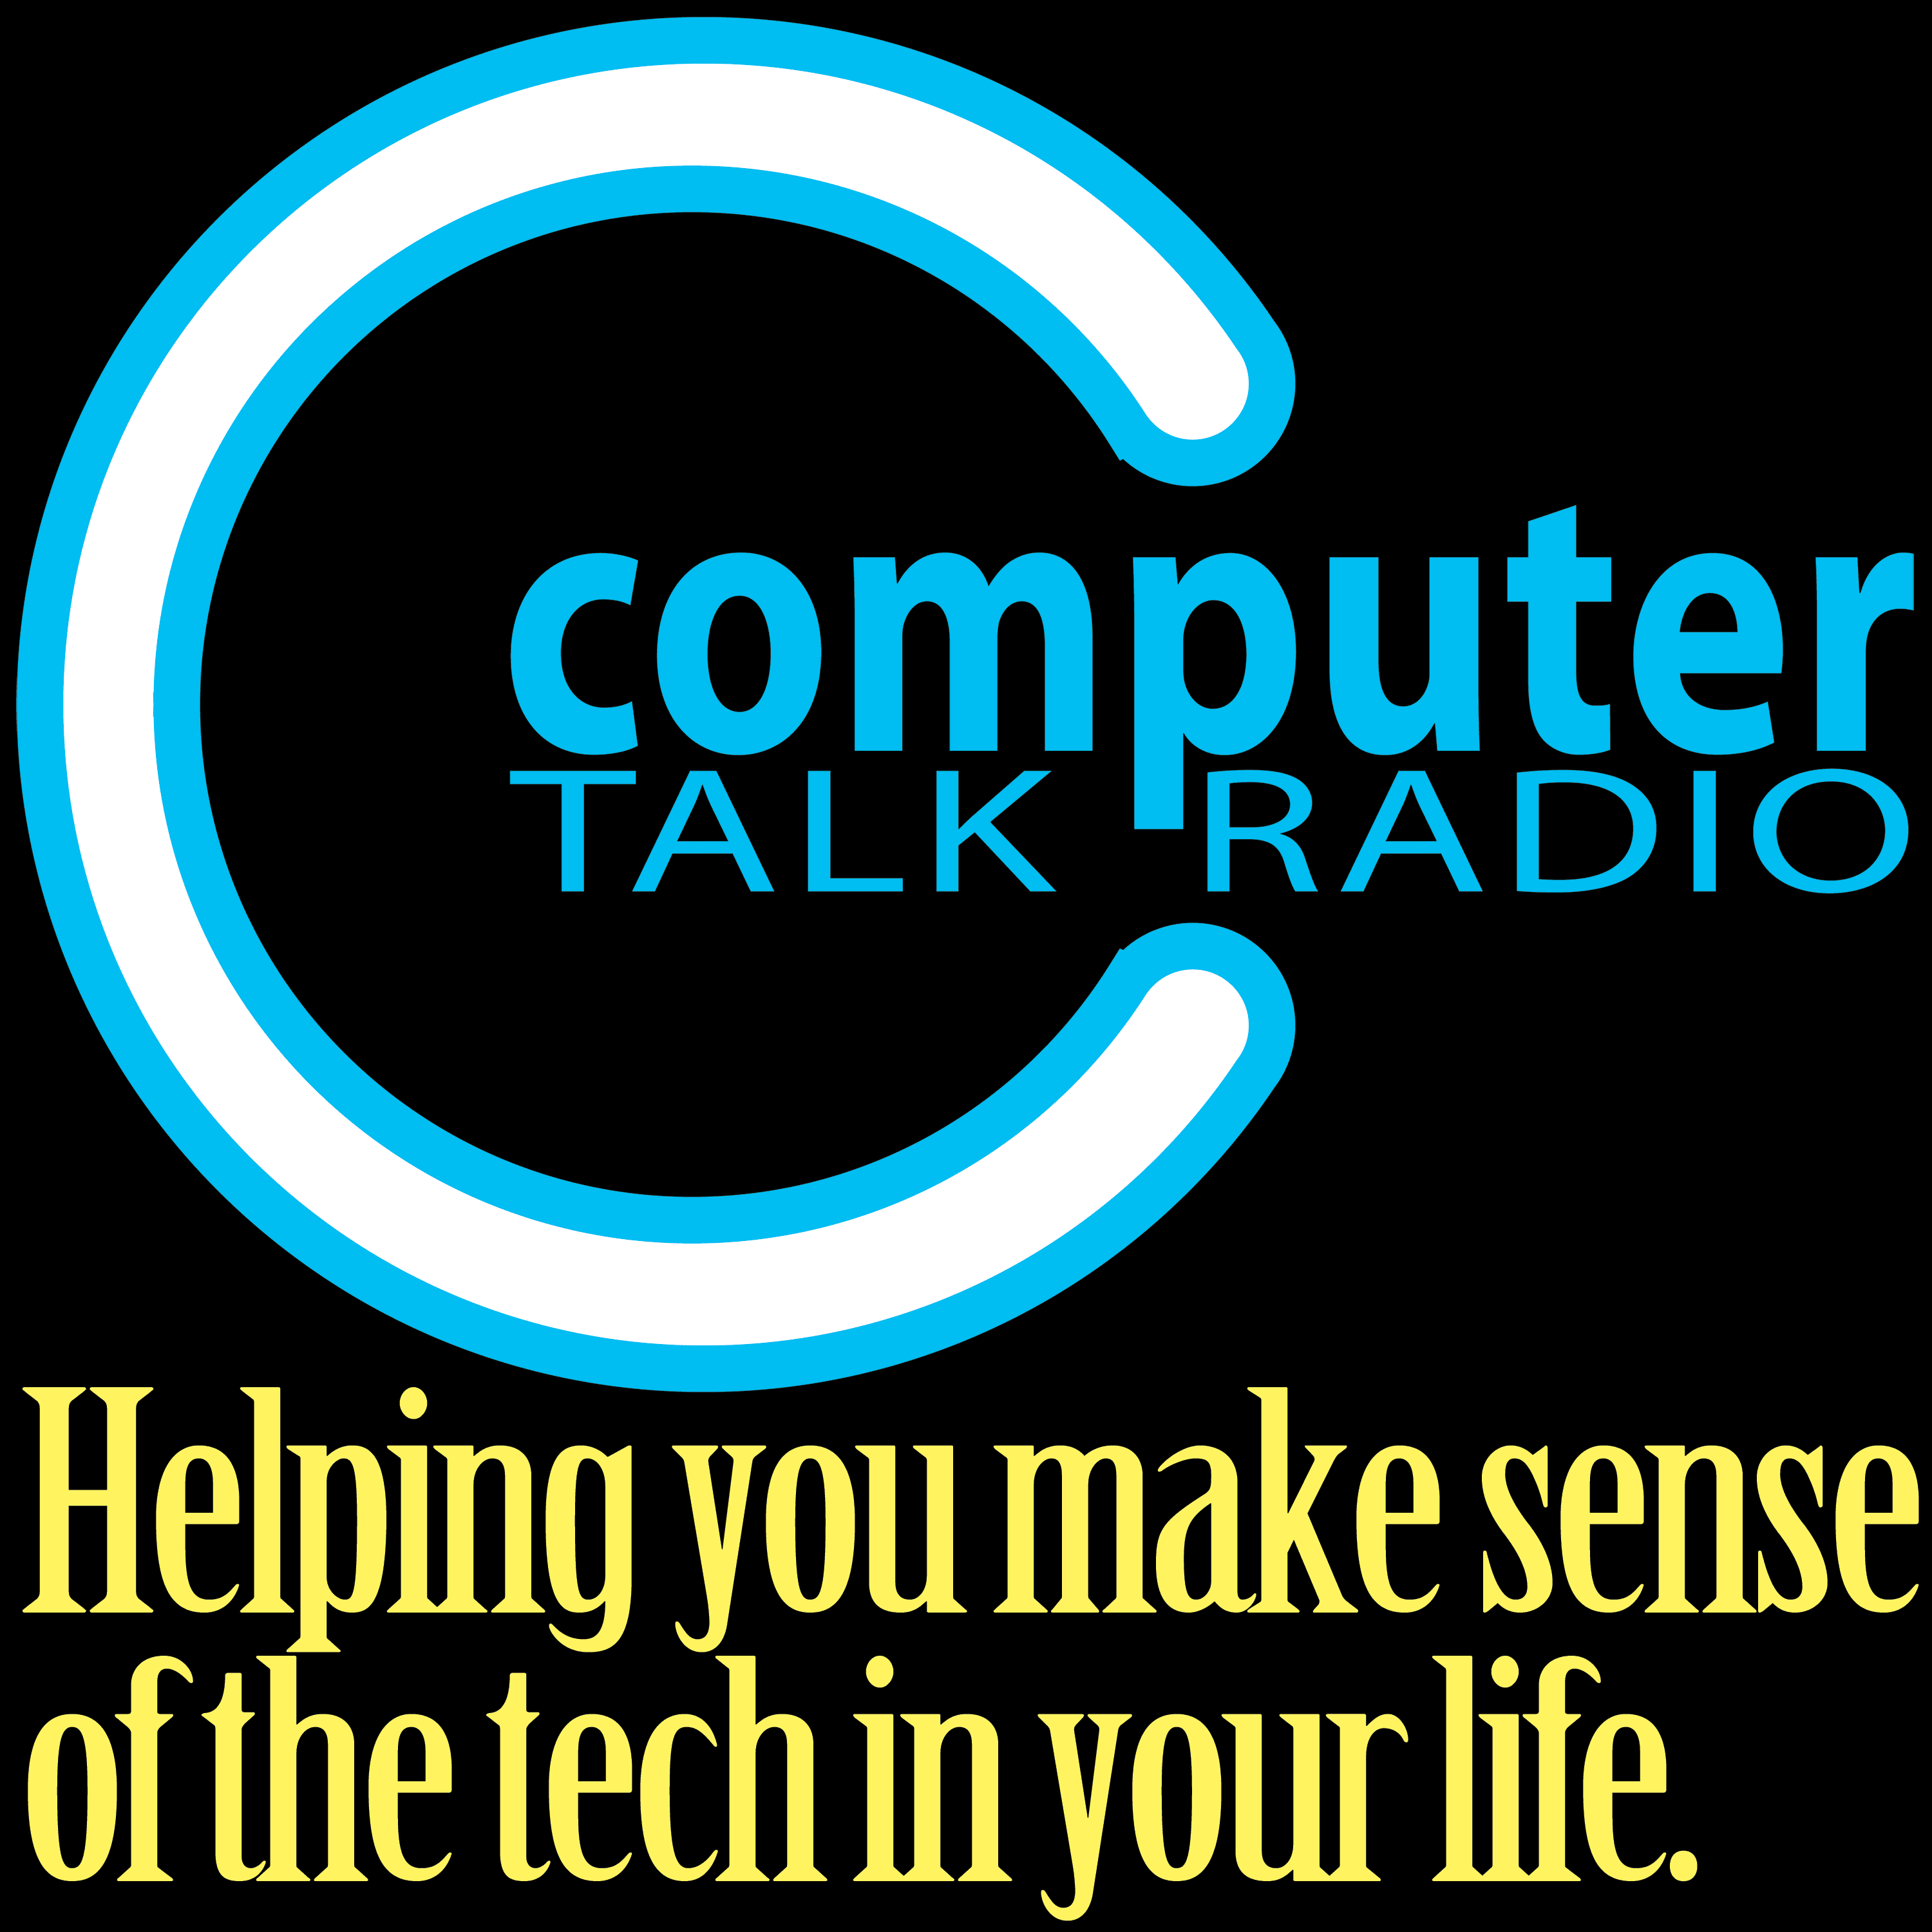 A highlight from Computer Talk Radio Broadcast 09-18-2021